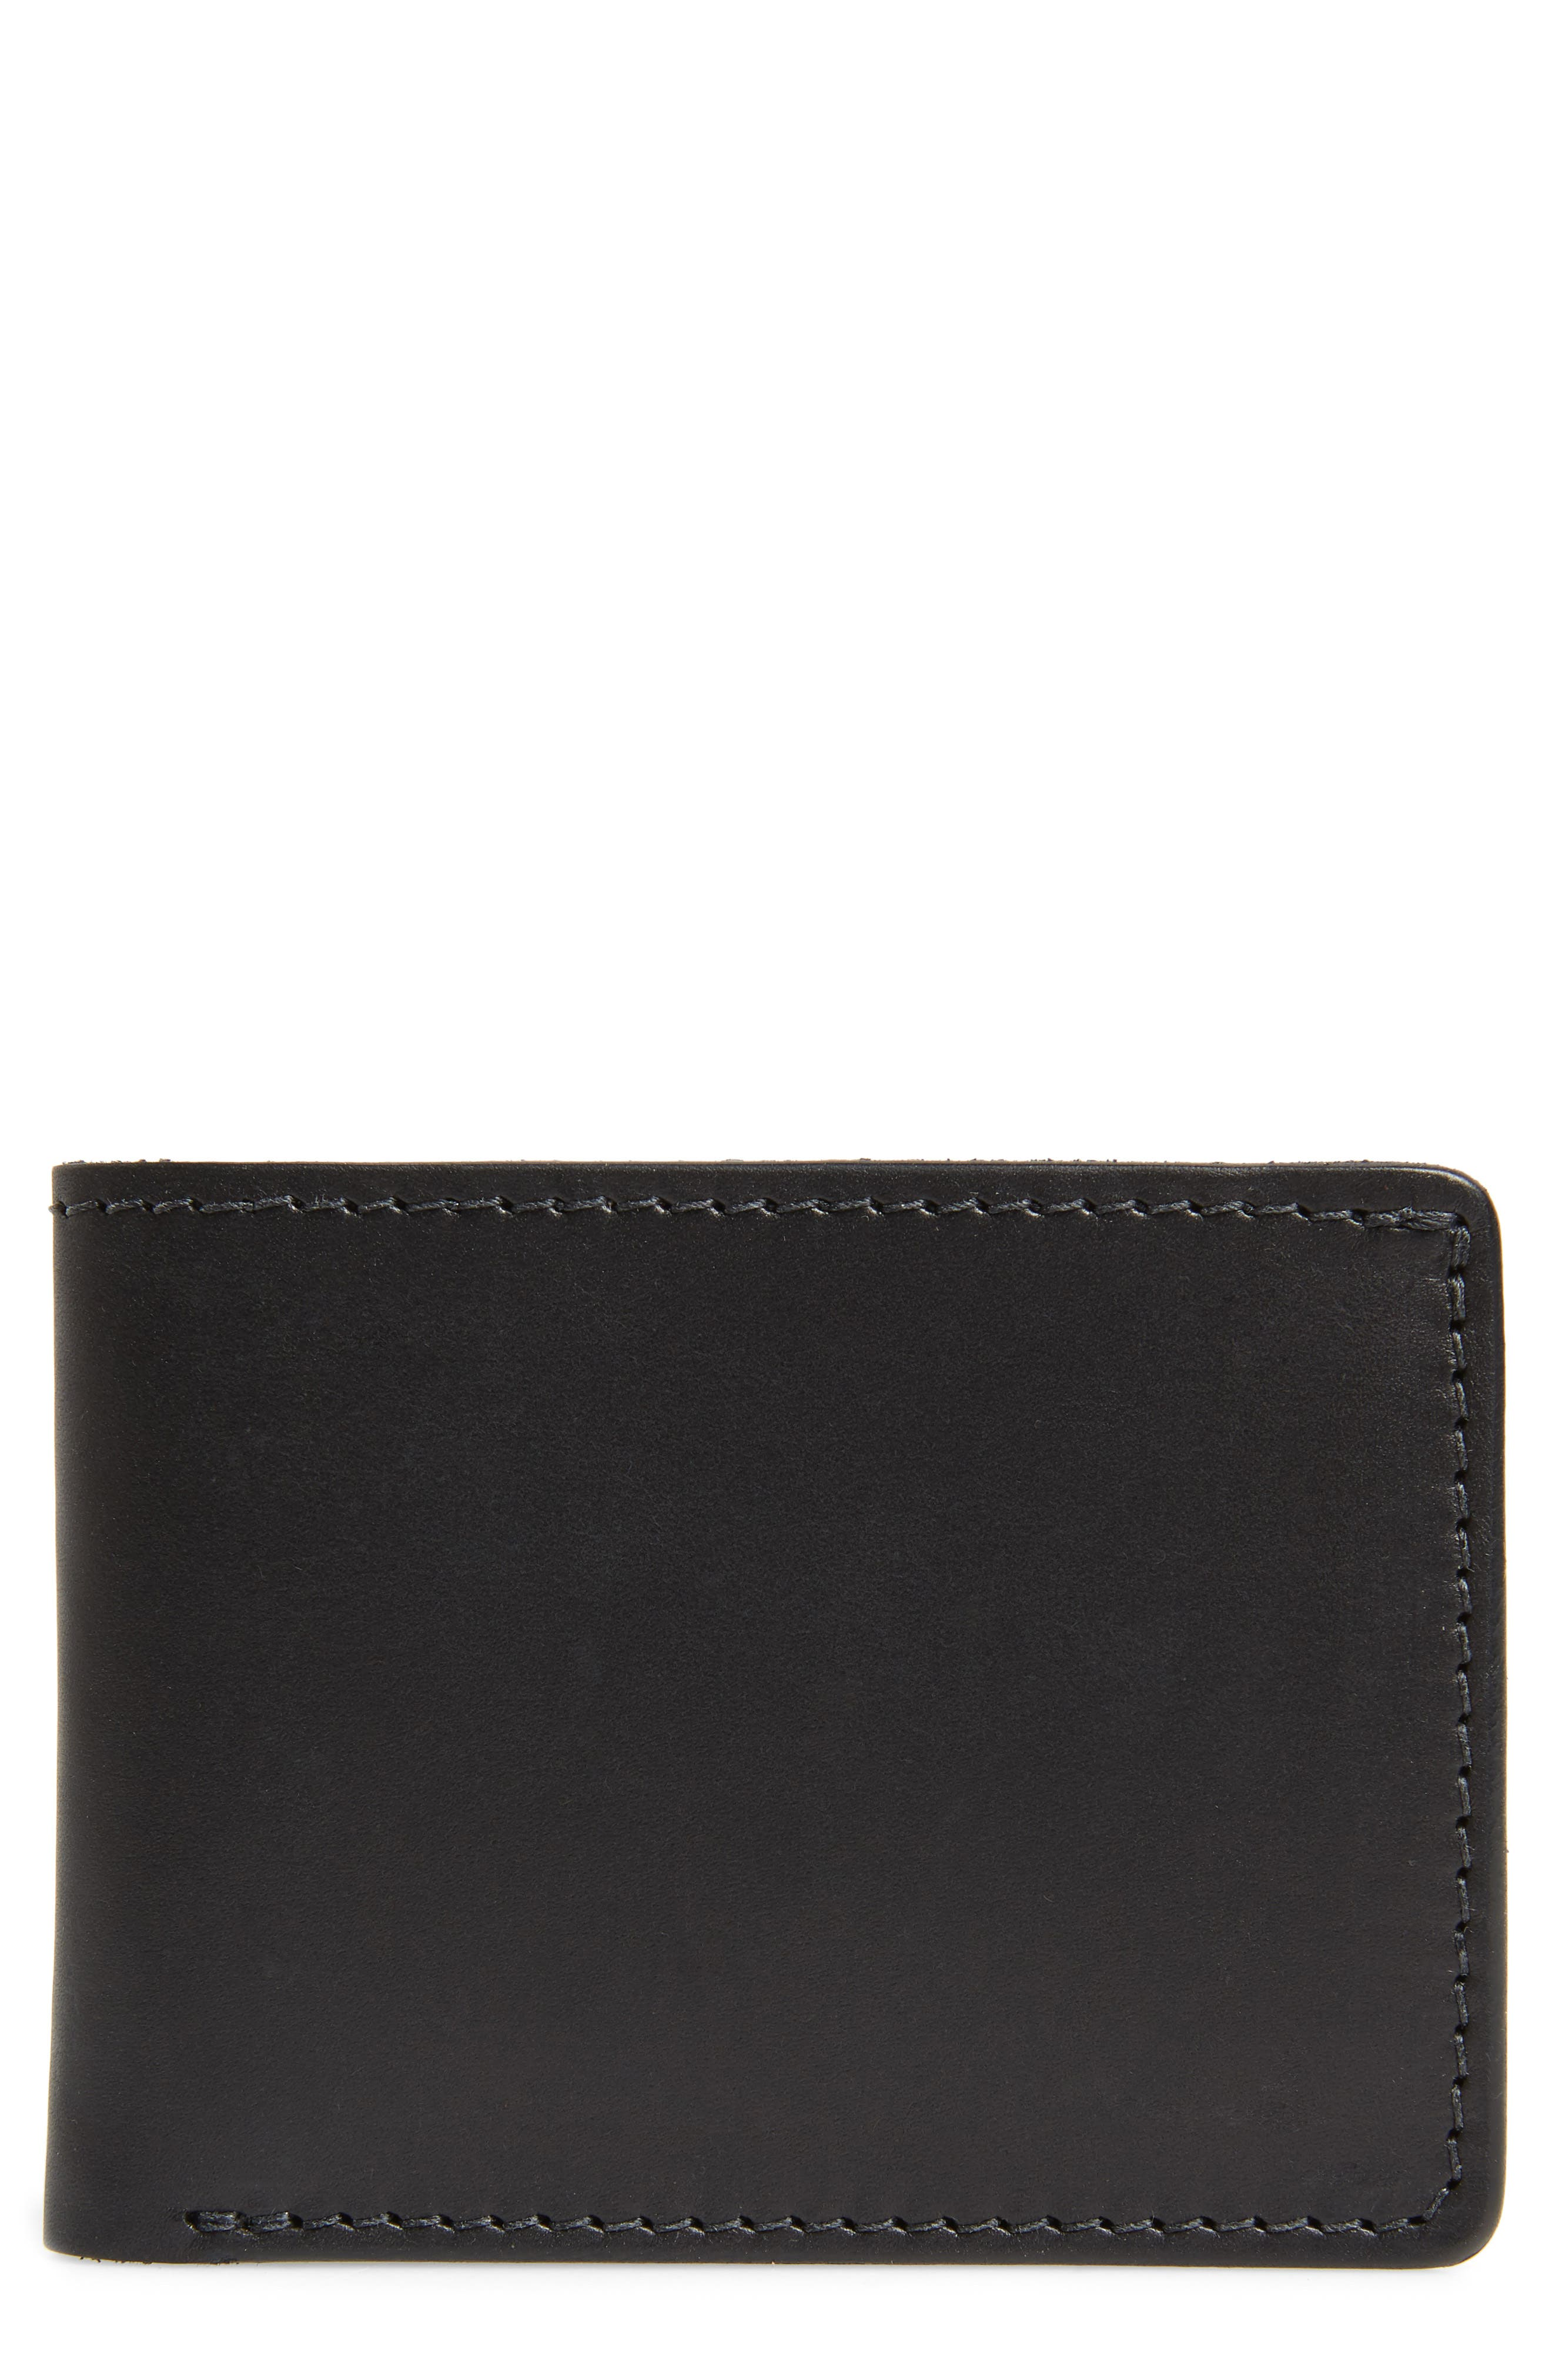 Utility Leather Bifold Wallet,                             Main thumbnail 1, color,                             BLACK